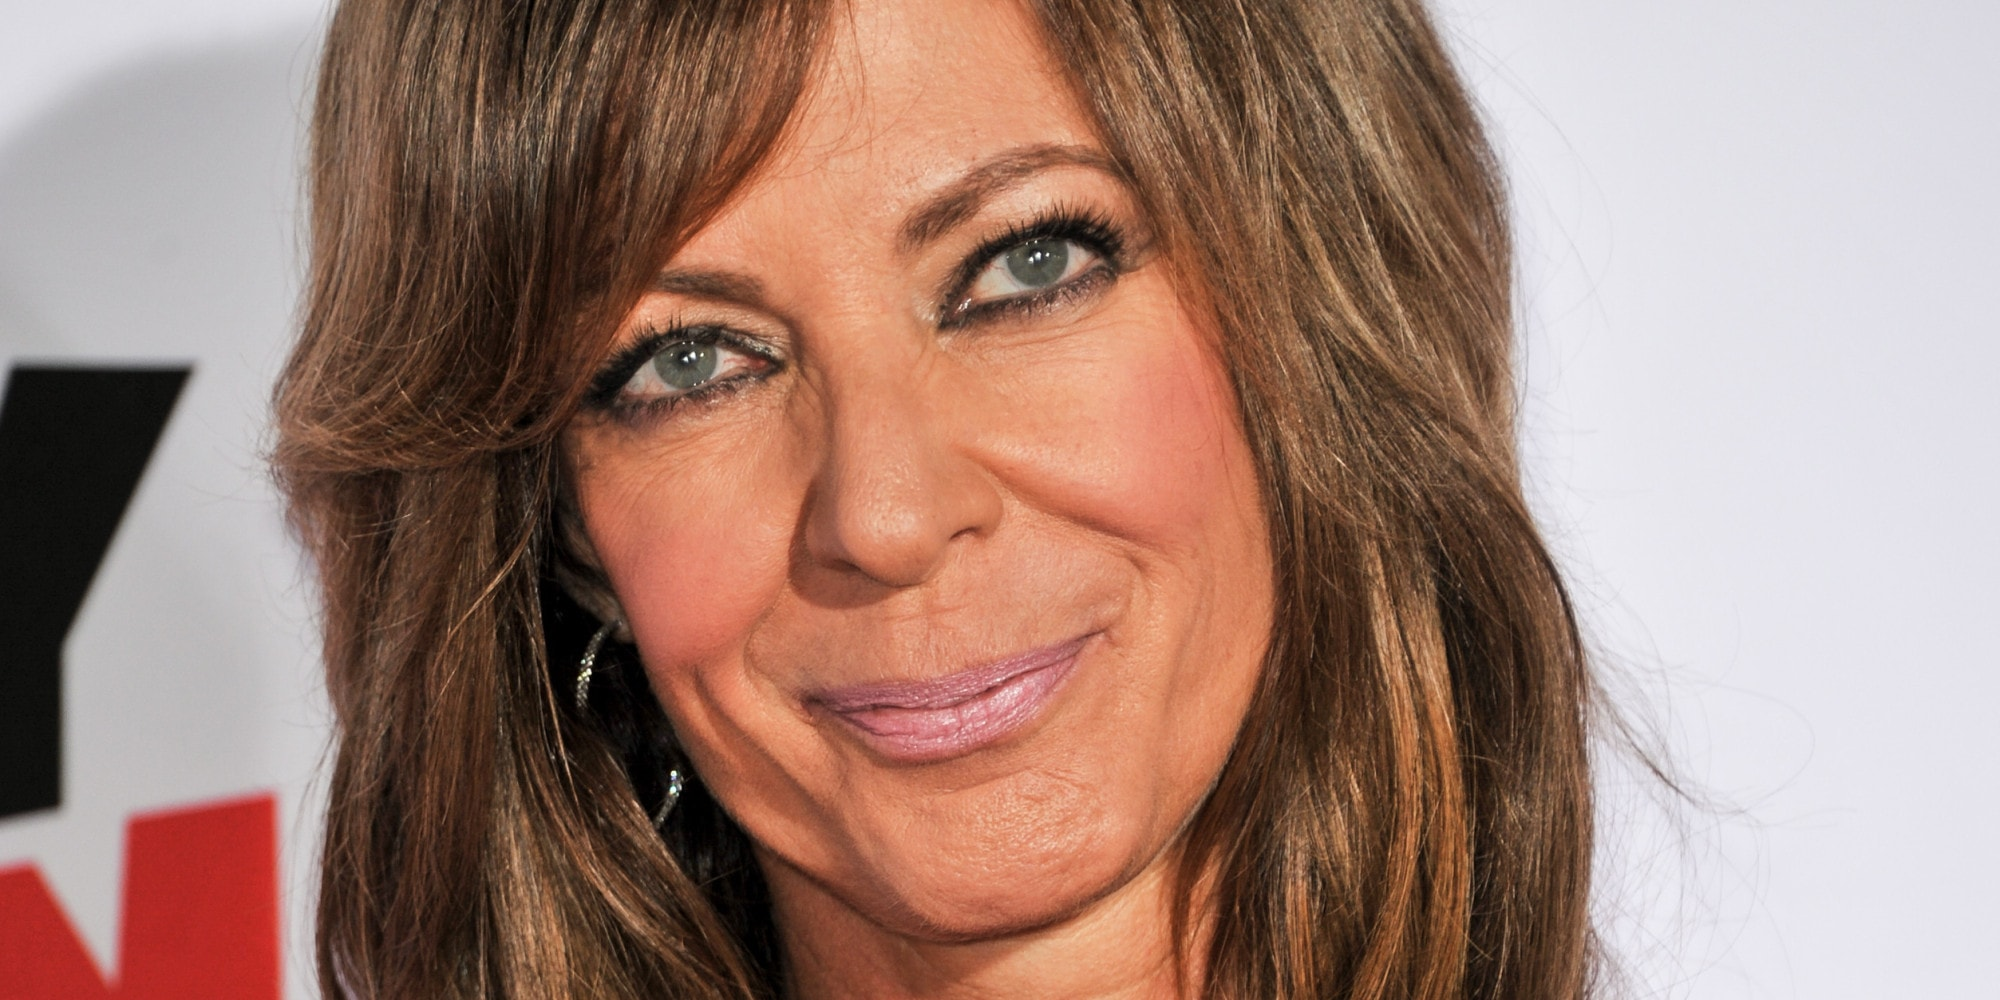 Allison Janney HD Desktop Wallpapers 7wallpapersnet 2000x1000